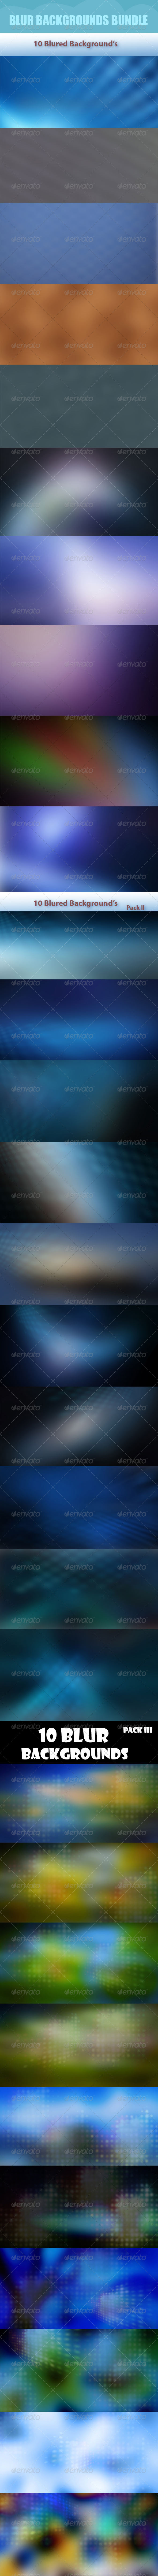 Blur Backgrounds Bundle